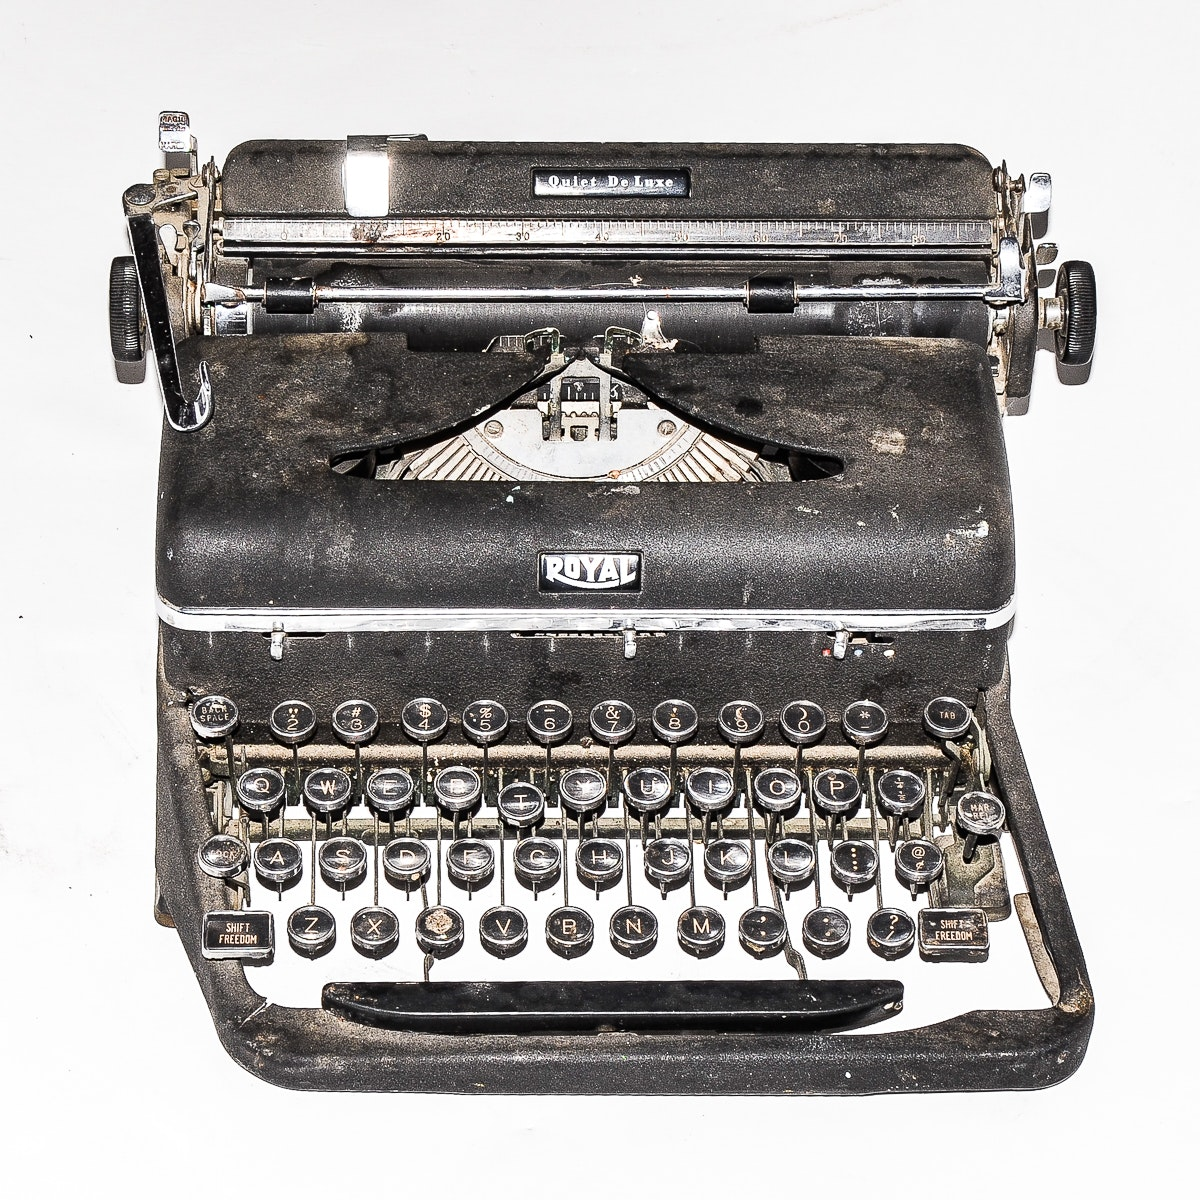 Royal Quiet de Lux Typewriter